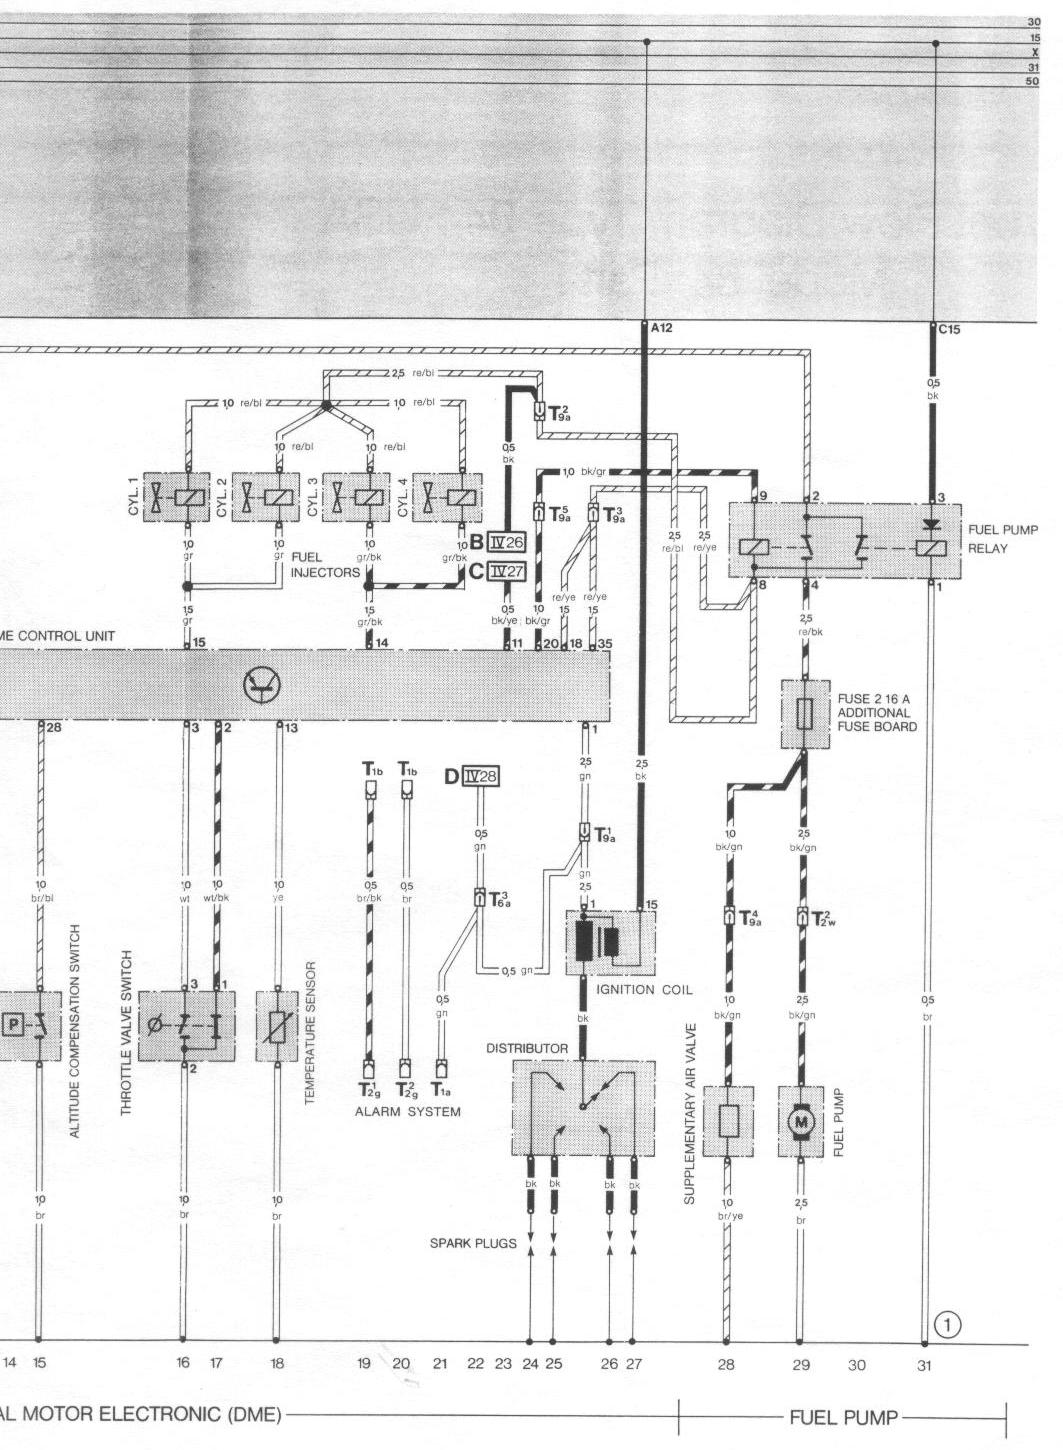 944_84_1_2 pelican parts porsche 924 944 electrical diagrams 1987 porsche 944 wiring diagram at readyjetset.co